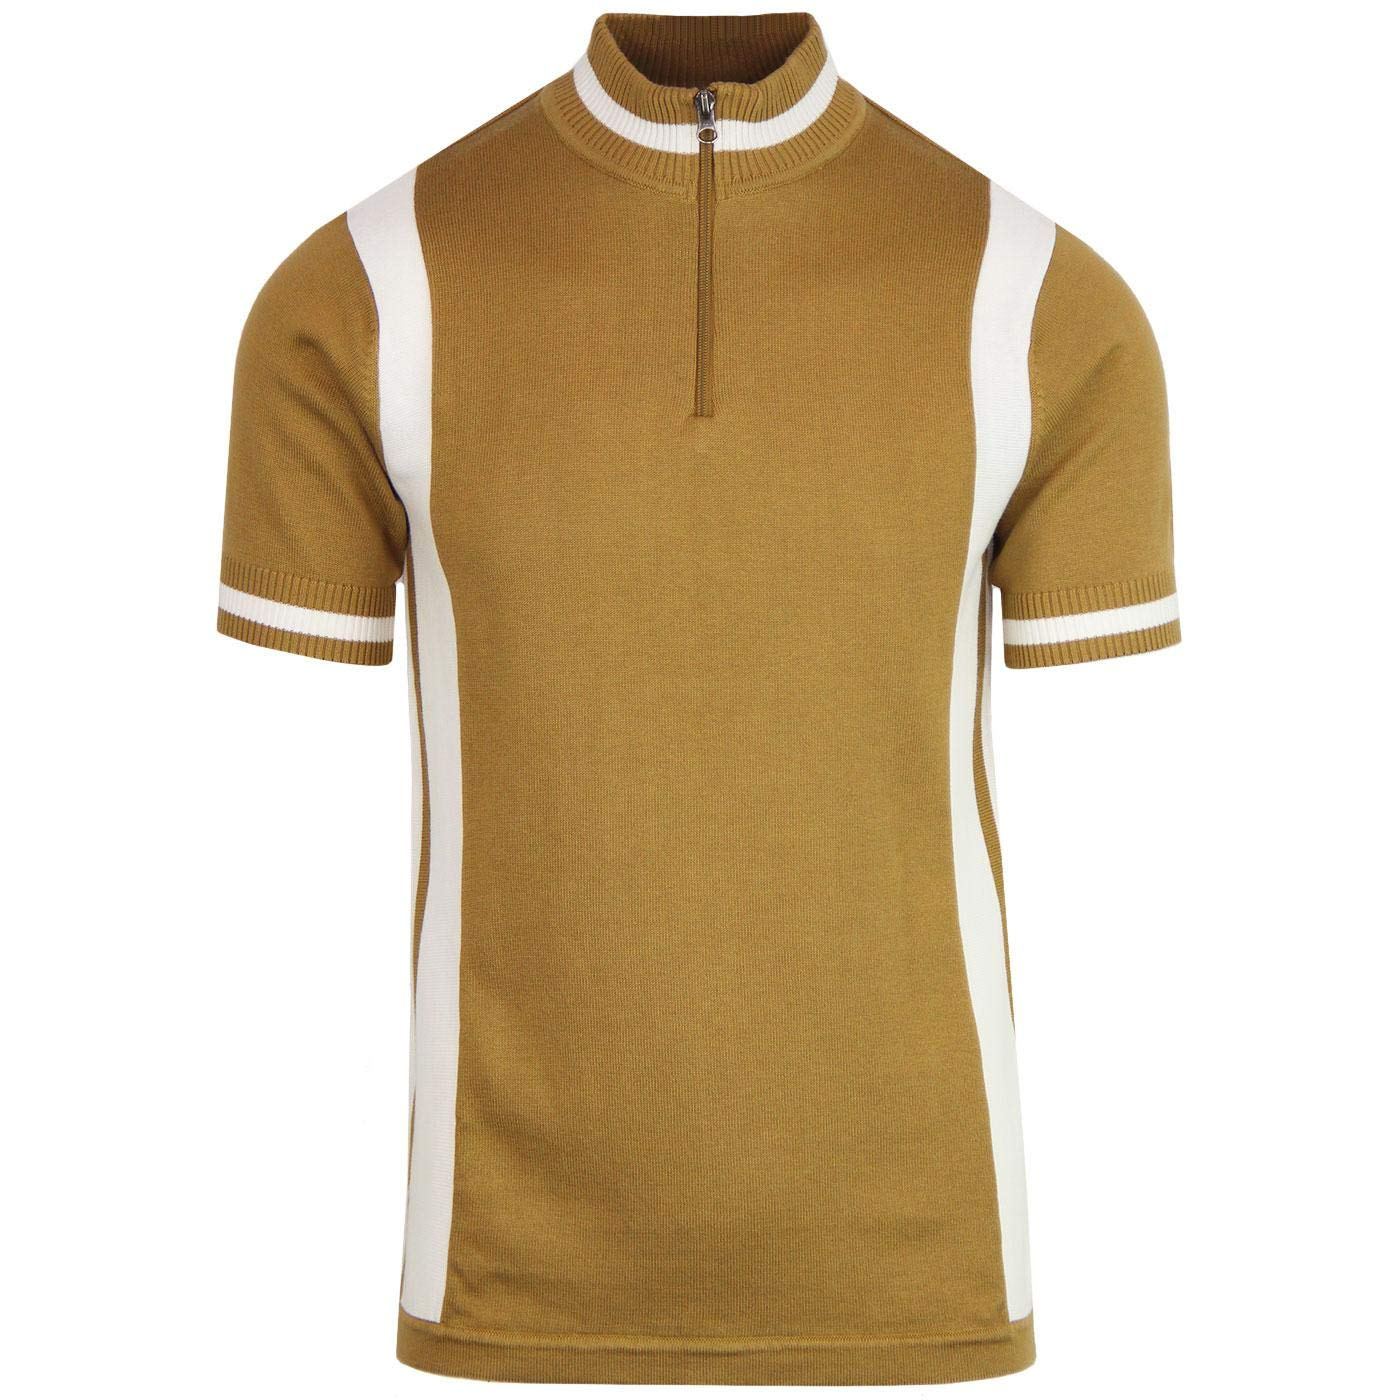 1960s – 70s Mens Shirts- Disco Shirts, Hippie Shirts Madcap England Vitesse Mens Retro 60s Knitted Cycling Top with Zip Funnel Neck £34.99 AT vintagedancer.com